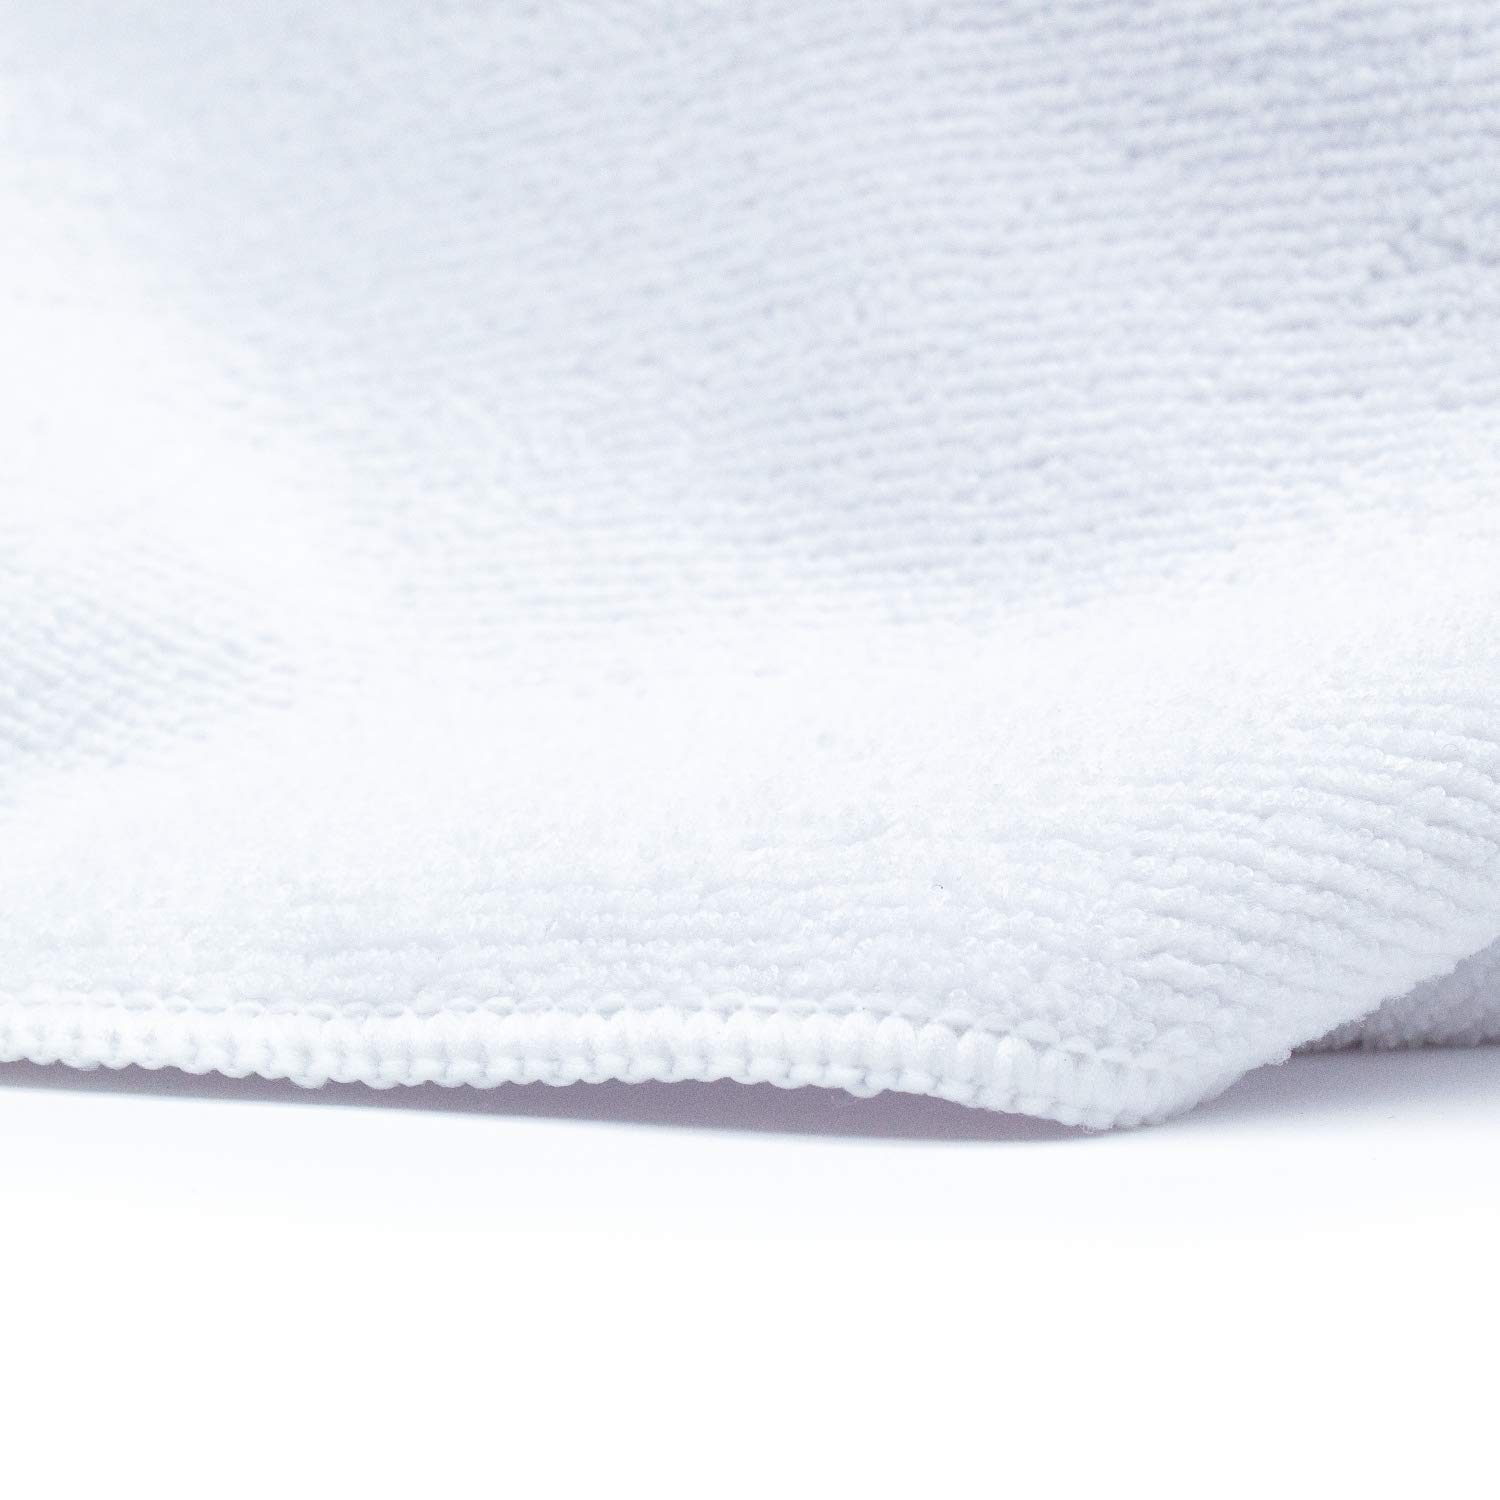 14 in x 14 in Streak-Free Cleaning Towels 12-Pack THE RAG COMPANY Commercial Grade All-Purpose Microfiber Highly Absorbent LINT-Free Royal Blue